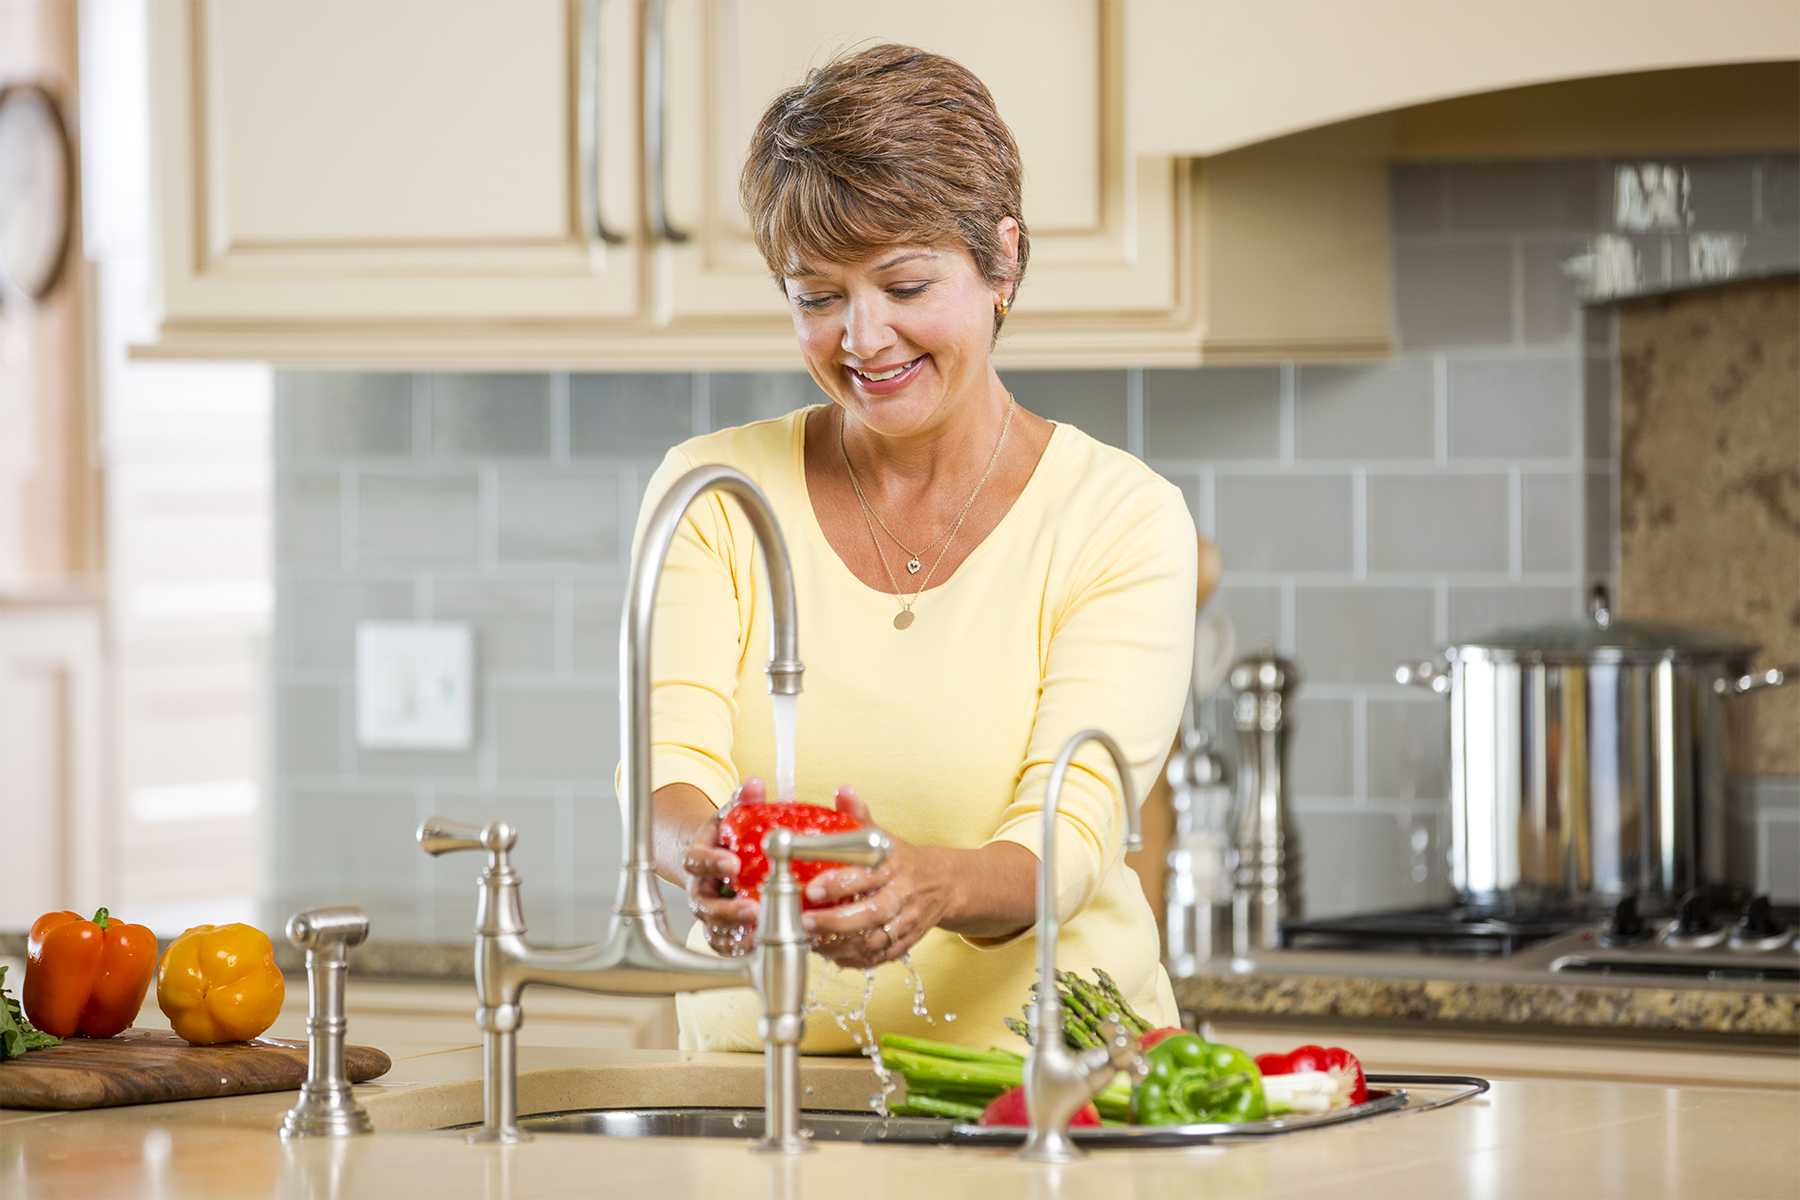 Woman-Washing-Veggies-46_r1.jpg